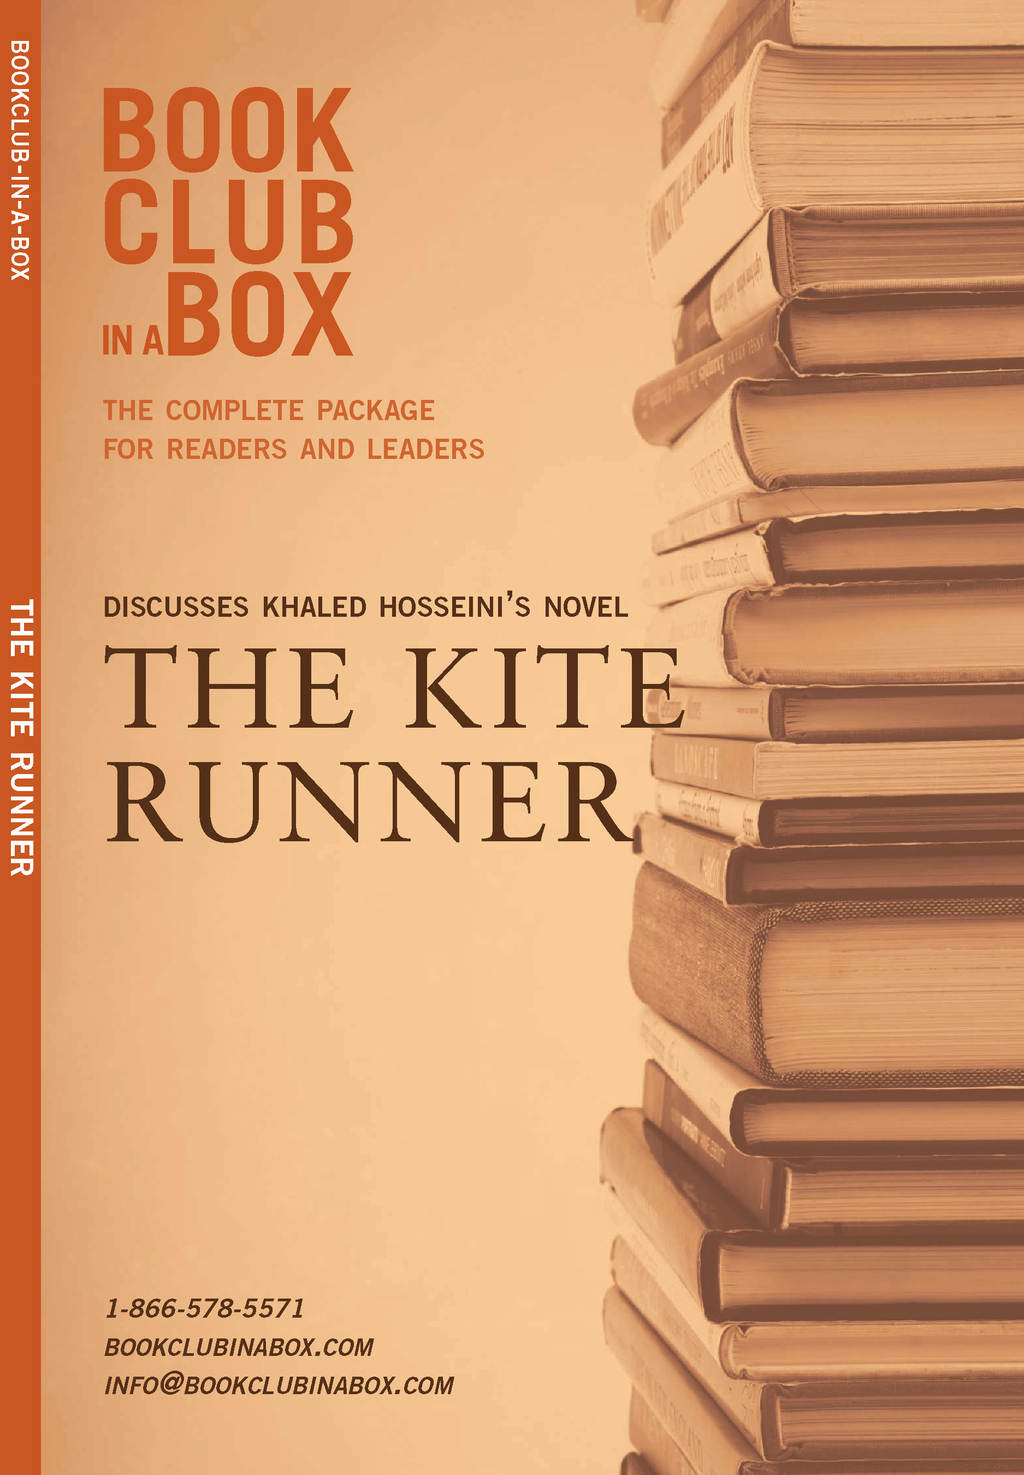 Bookclub-in-a-Box Discusses Khaled Hosseini's novel, The Kite Runner: The complete package for readers and leaders By: Marilyn Herbert